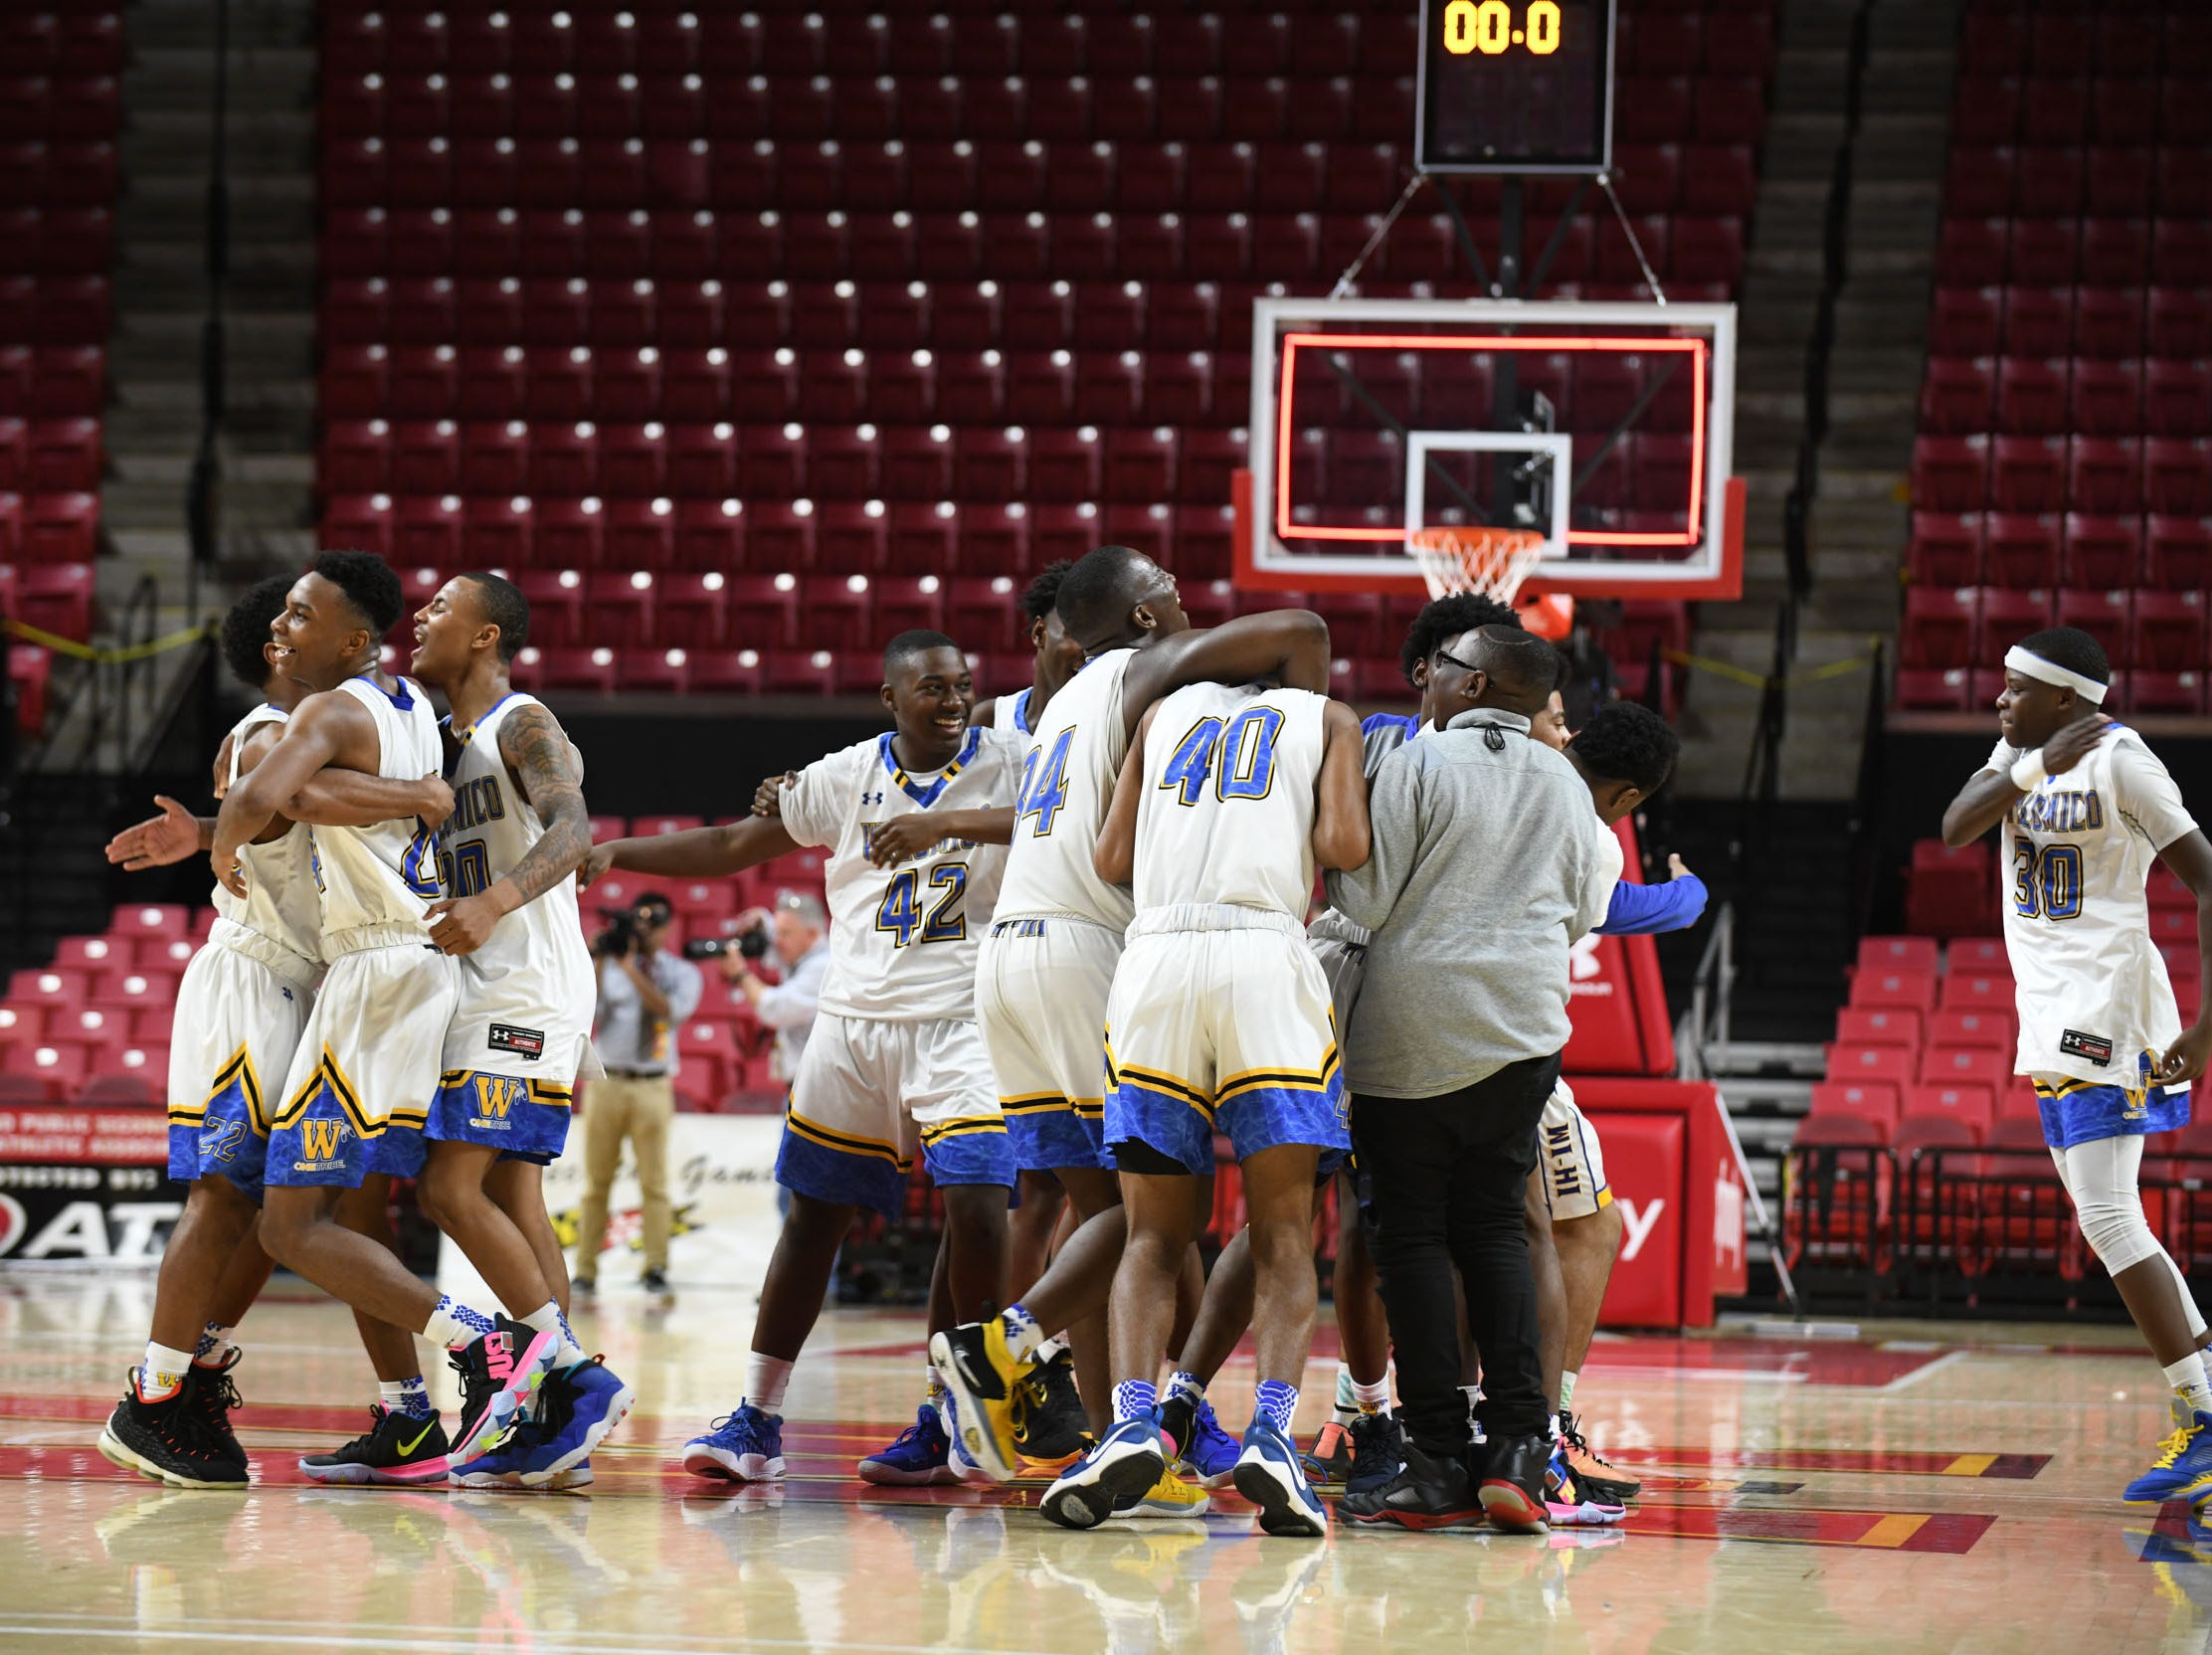 Wi-Hi celebrates after winning against Oakdale during the MPSSAA semifinals at the Xfinity Center in College Park, Md. Friday, March 15, 2019.